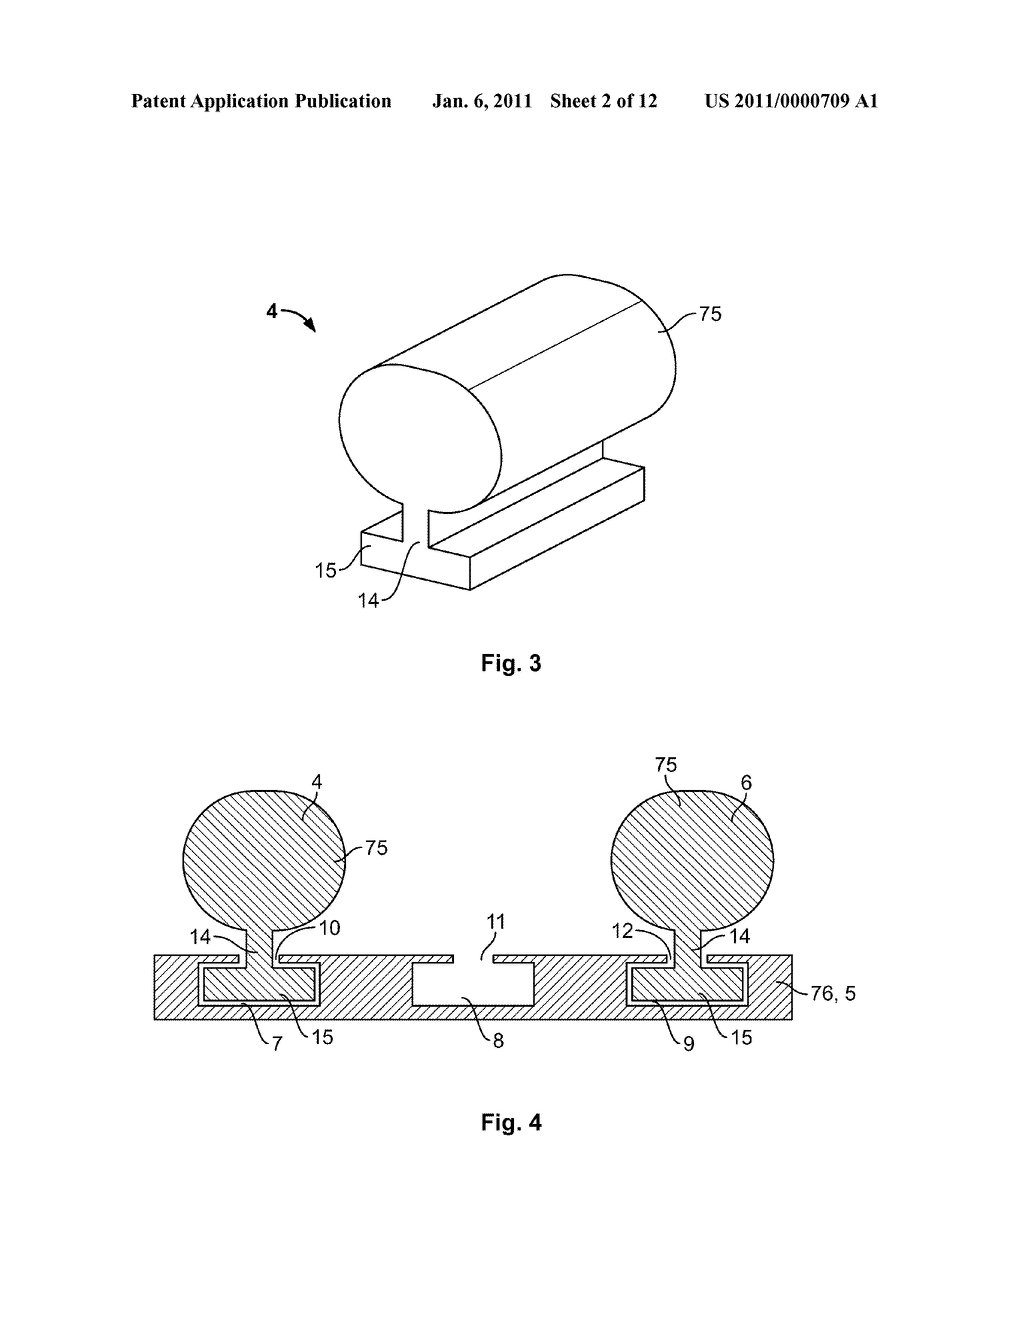 Junction Box For Connecting A Solar Cell Electrical Diode Guiding Schematic Element And Fixing Means Diagram Image 03